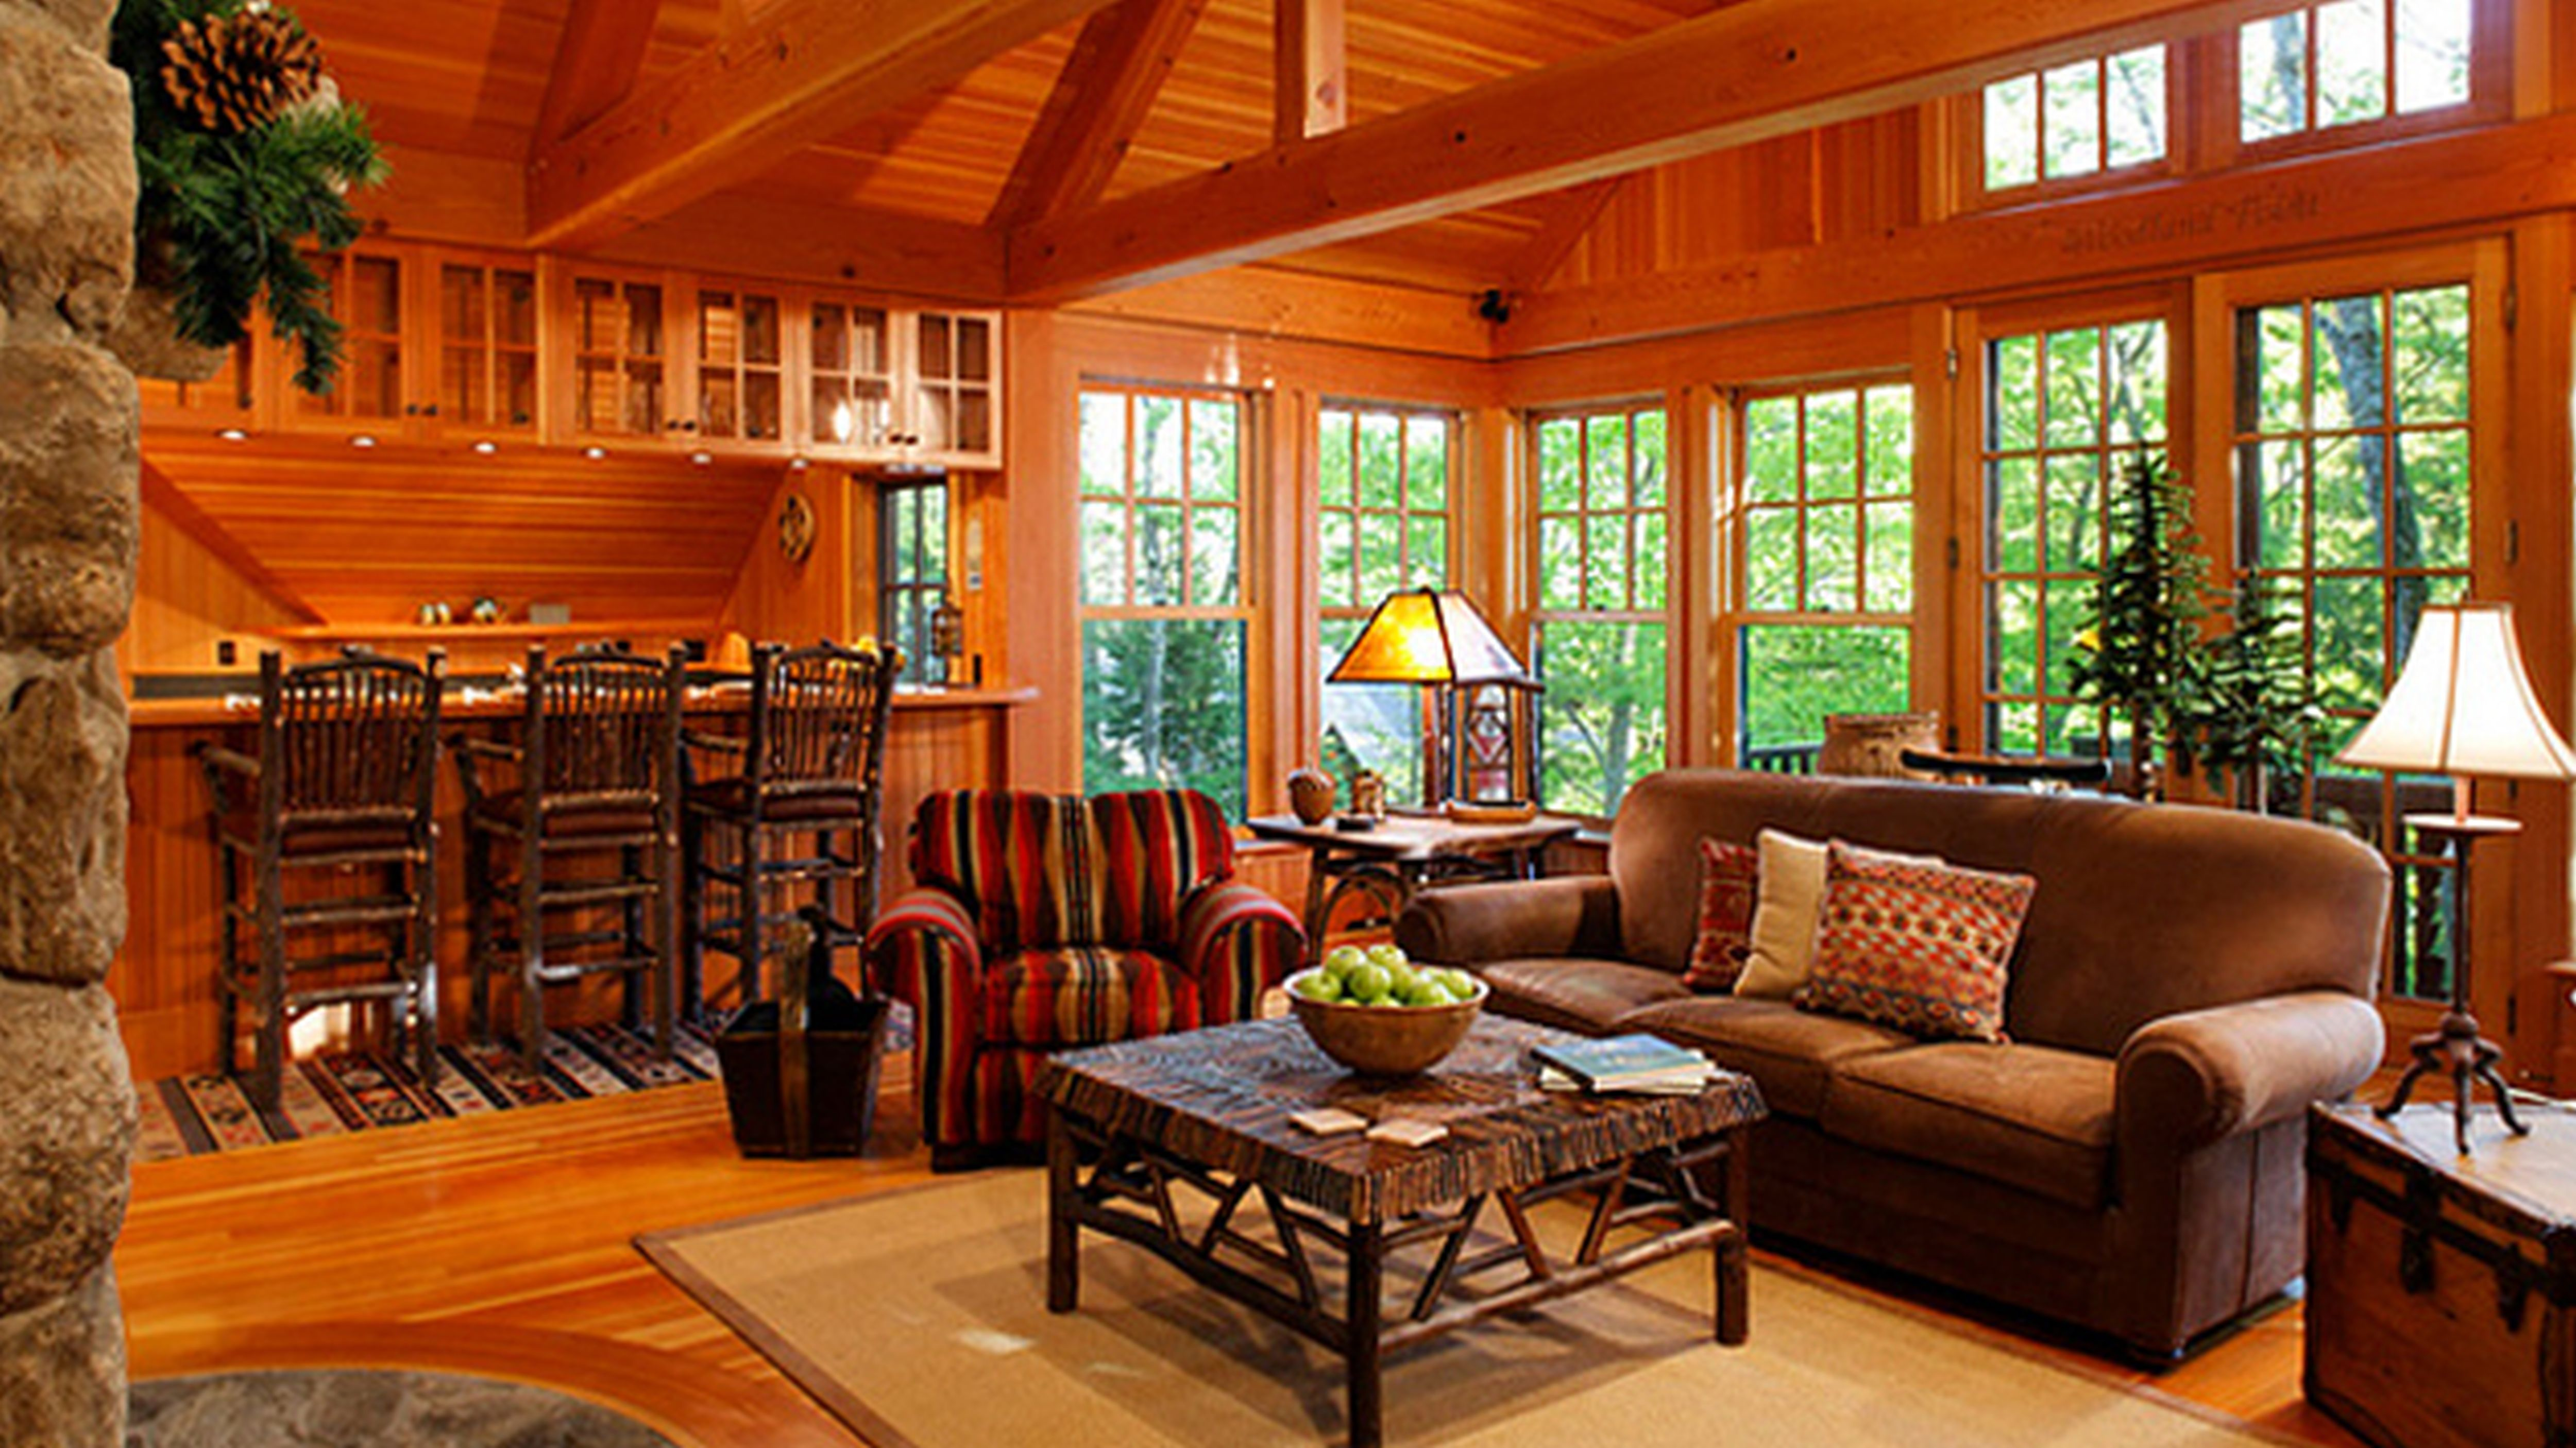 Great Country Home Interior Designs With Excellent Best House Plans With Sunrooms Outdoor Design Ideas Gallery Of Sunroom Living Room Inspiration Modern Glass House Wooden Designs Inside Home Decor Diy Home Decor Ideas Catalog Fabric Decorat